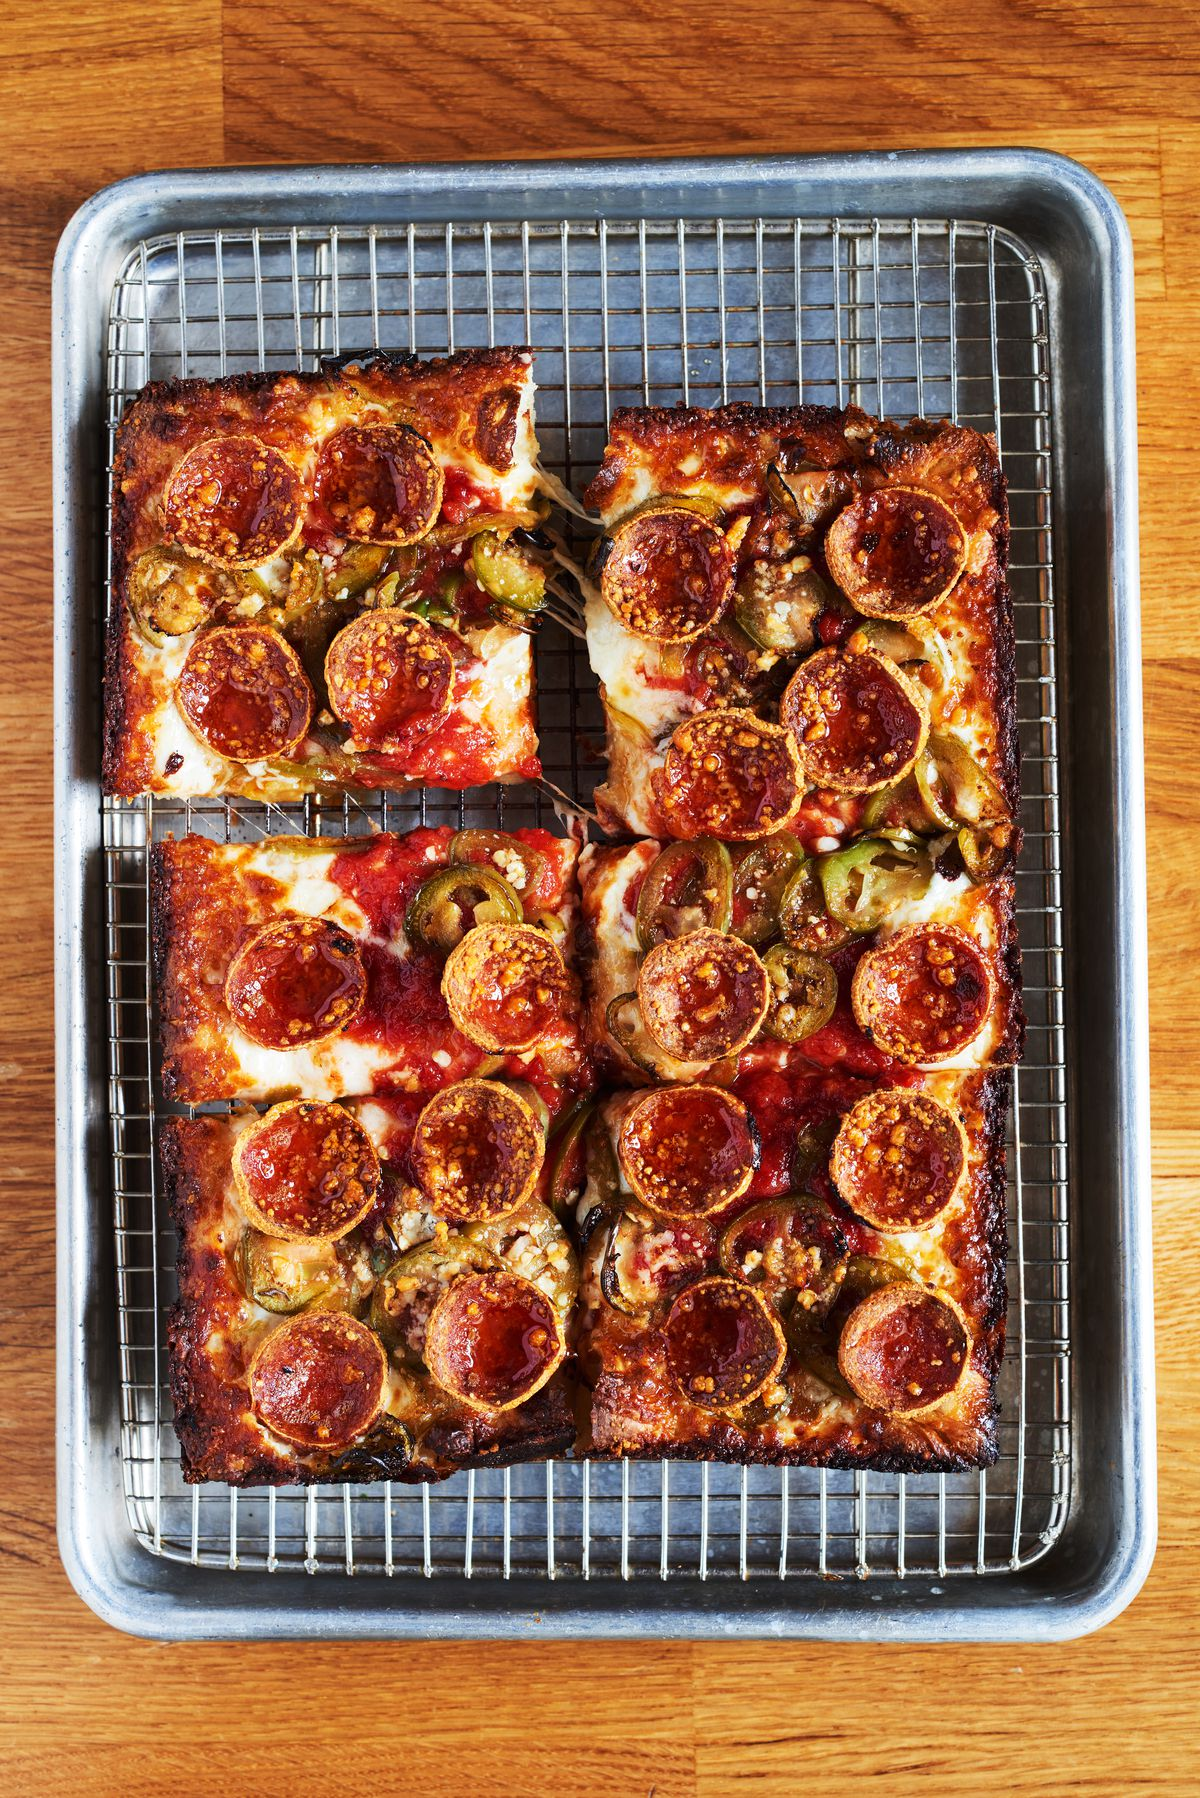 Six, thick square slices of the Colony2 pizza topped with pepperoni, pickled jalapeños, and drizzled in honey on a rectangular metal tray